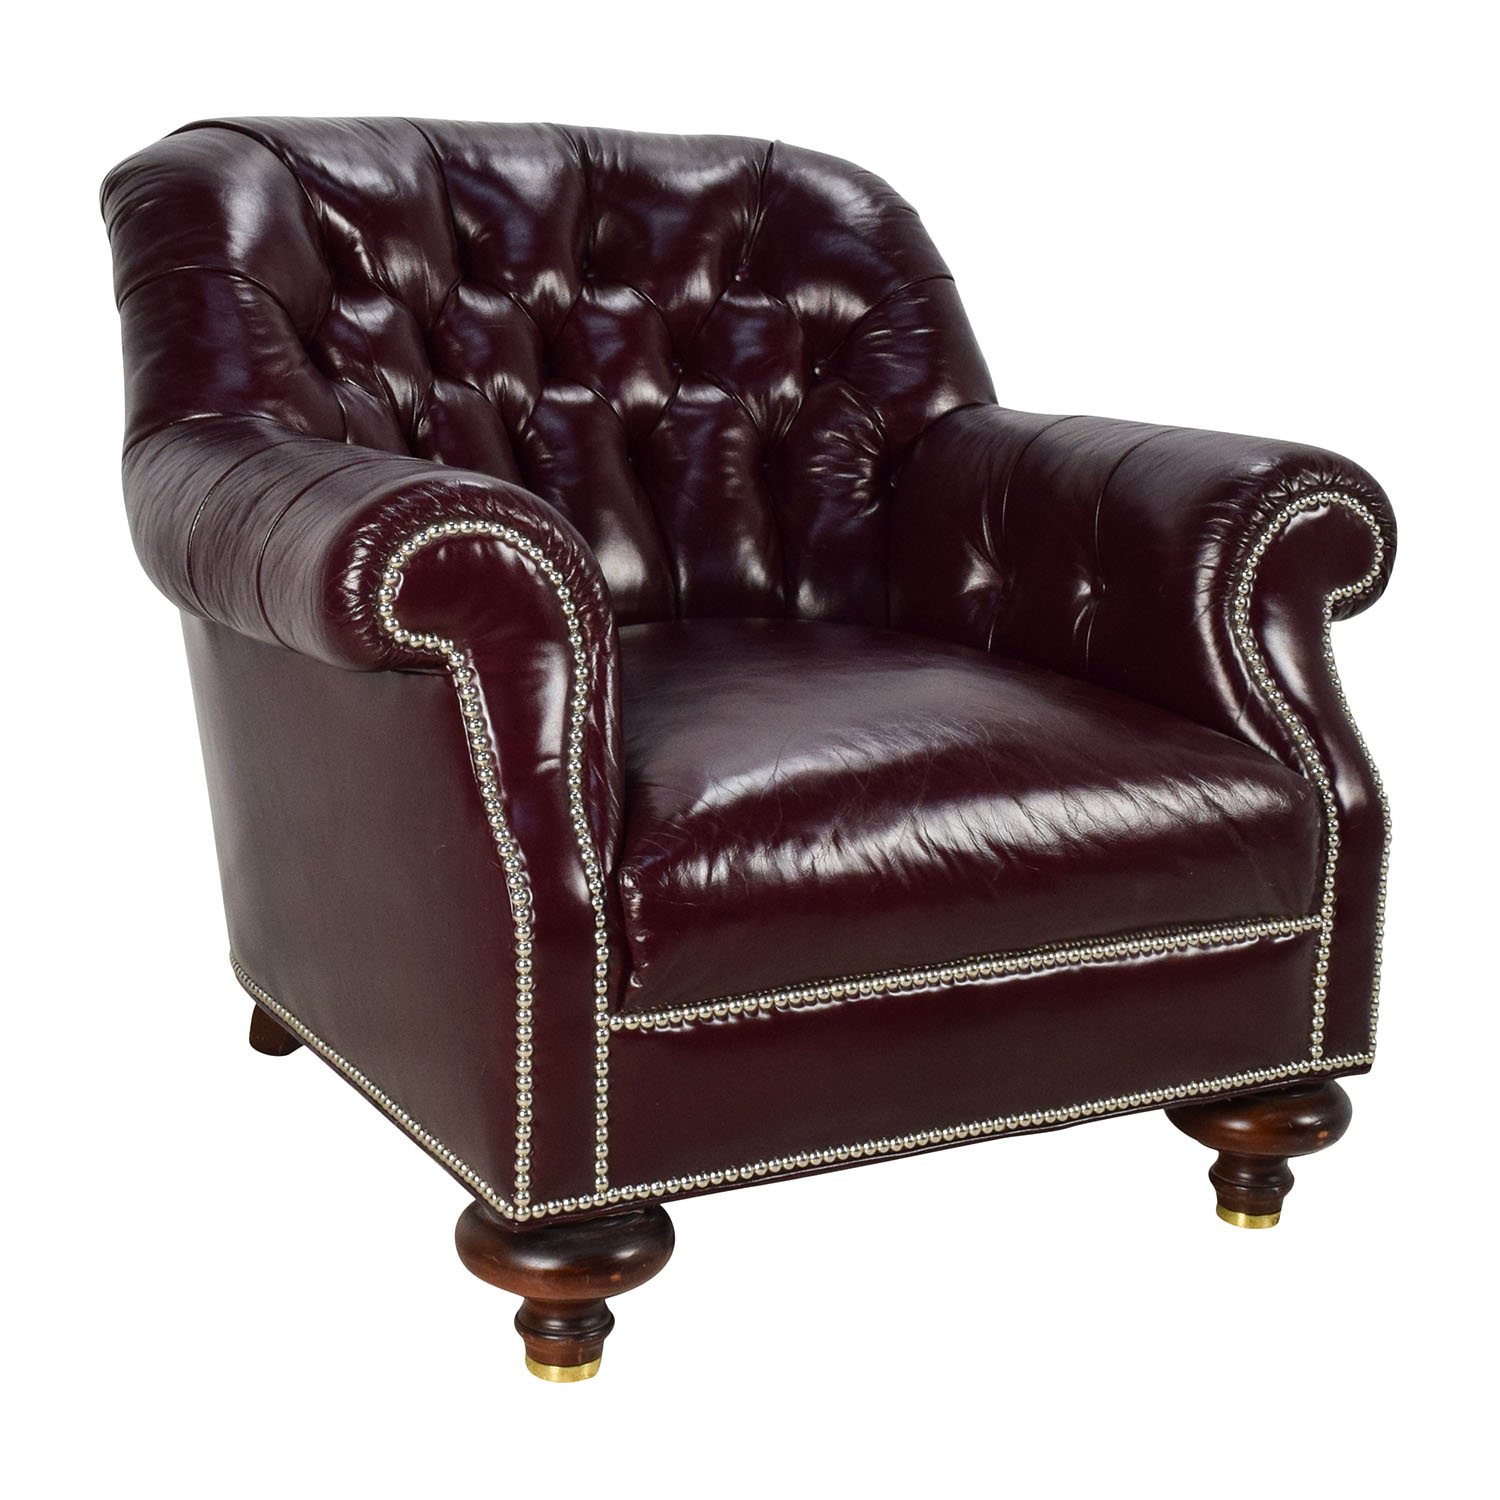 90% OFF Baker Furniture Baker Tufted Leather Lounge Chair Chairs